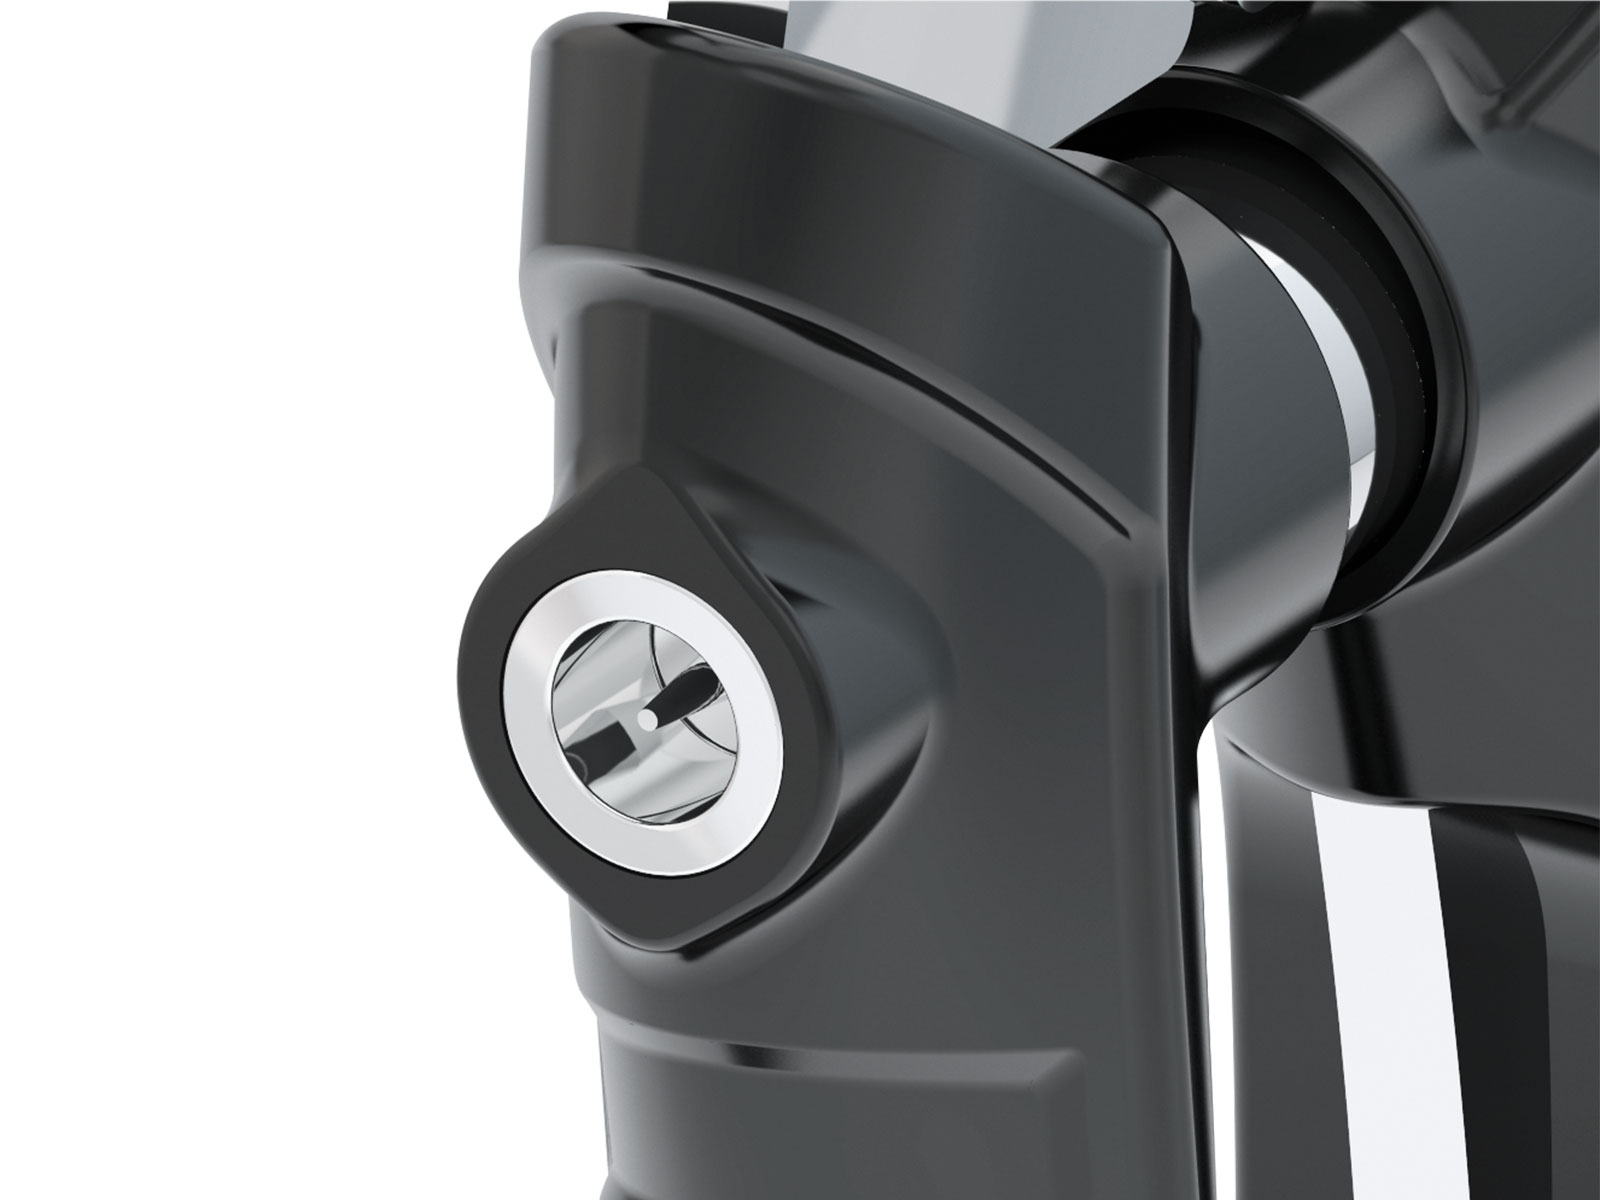 CABLE & HOUSING CUTTER | Topeak